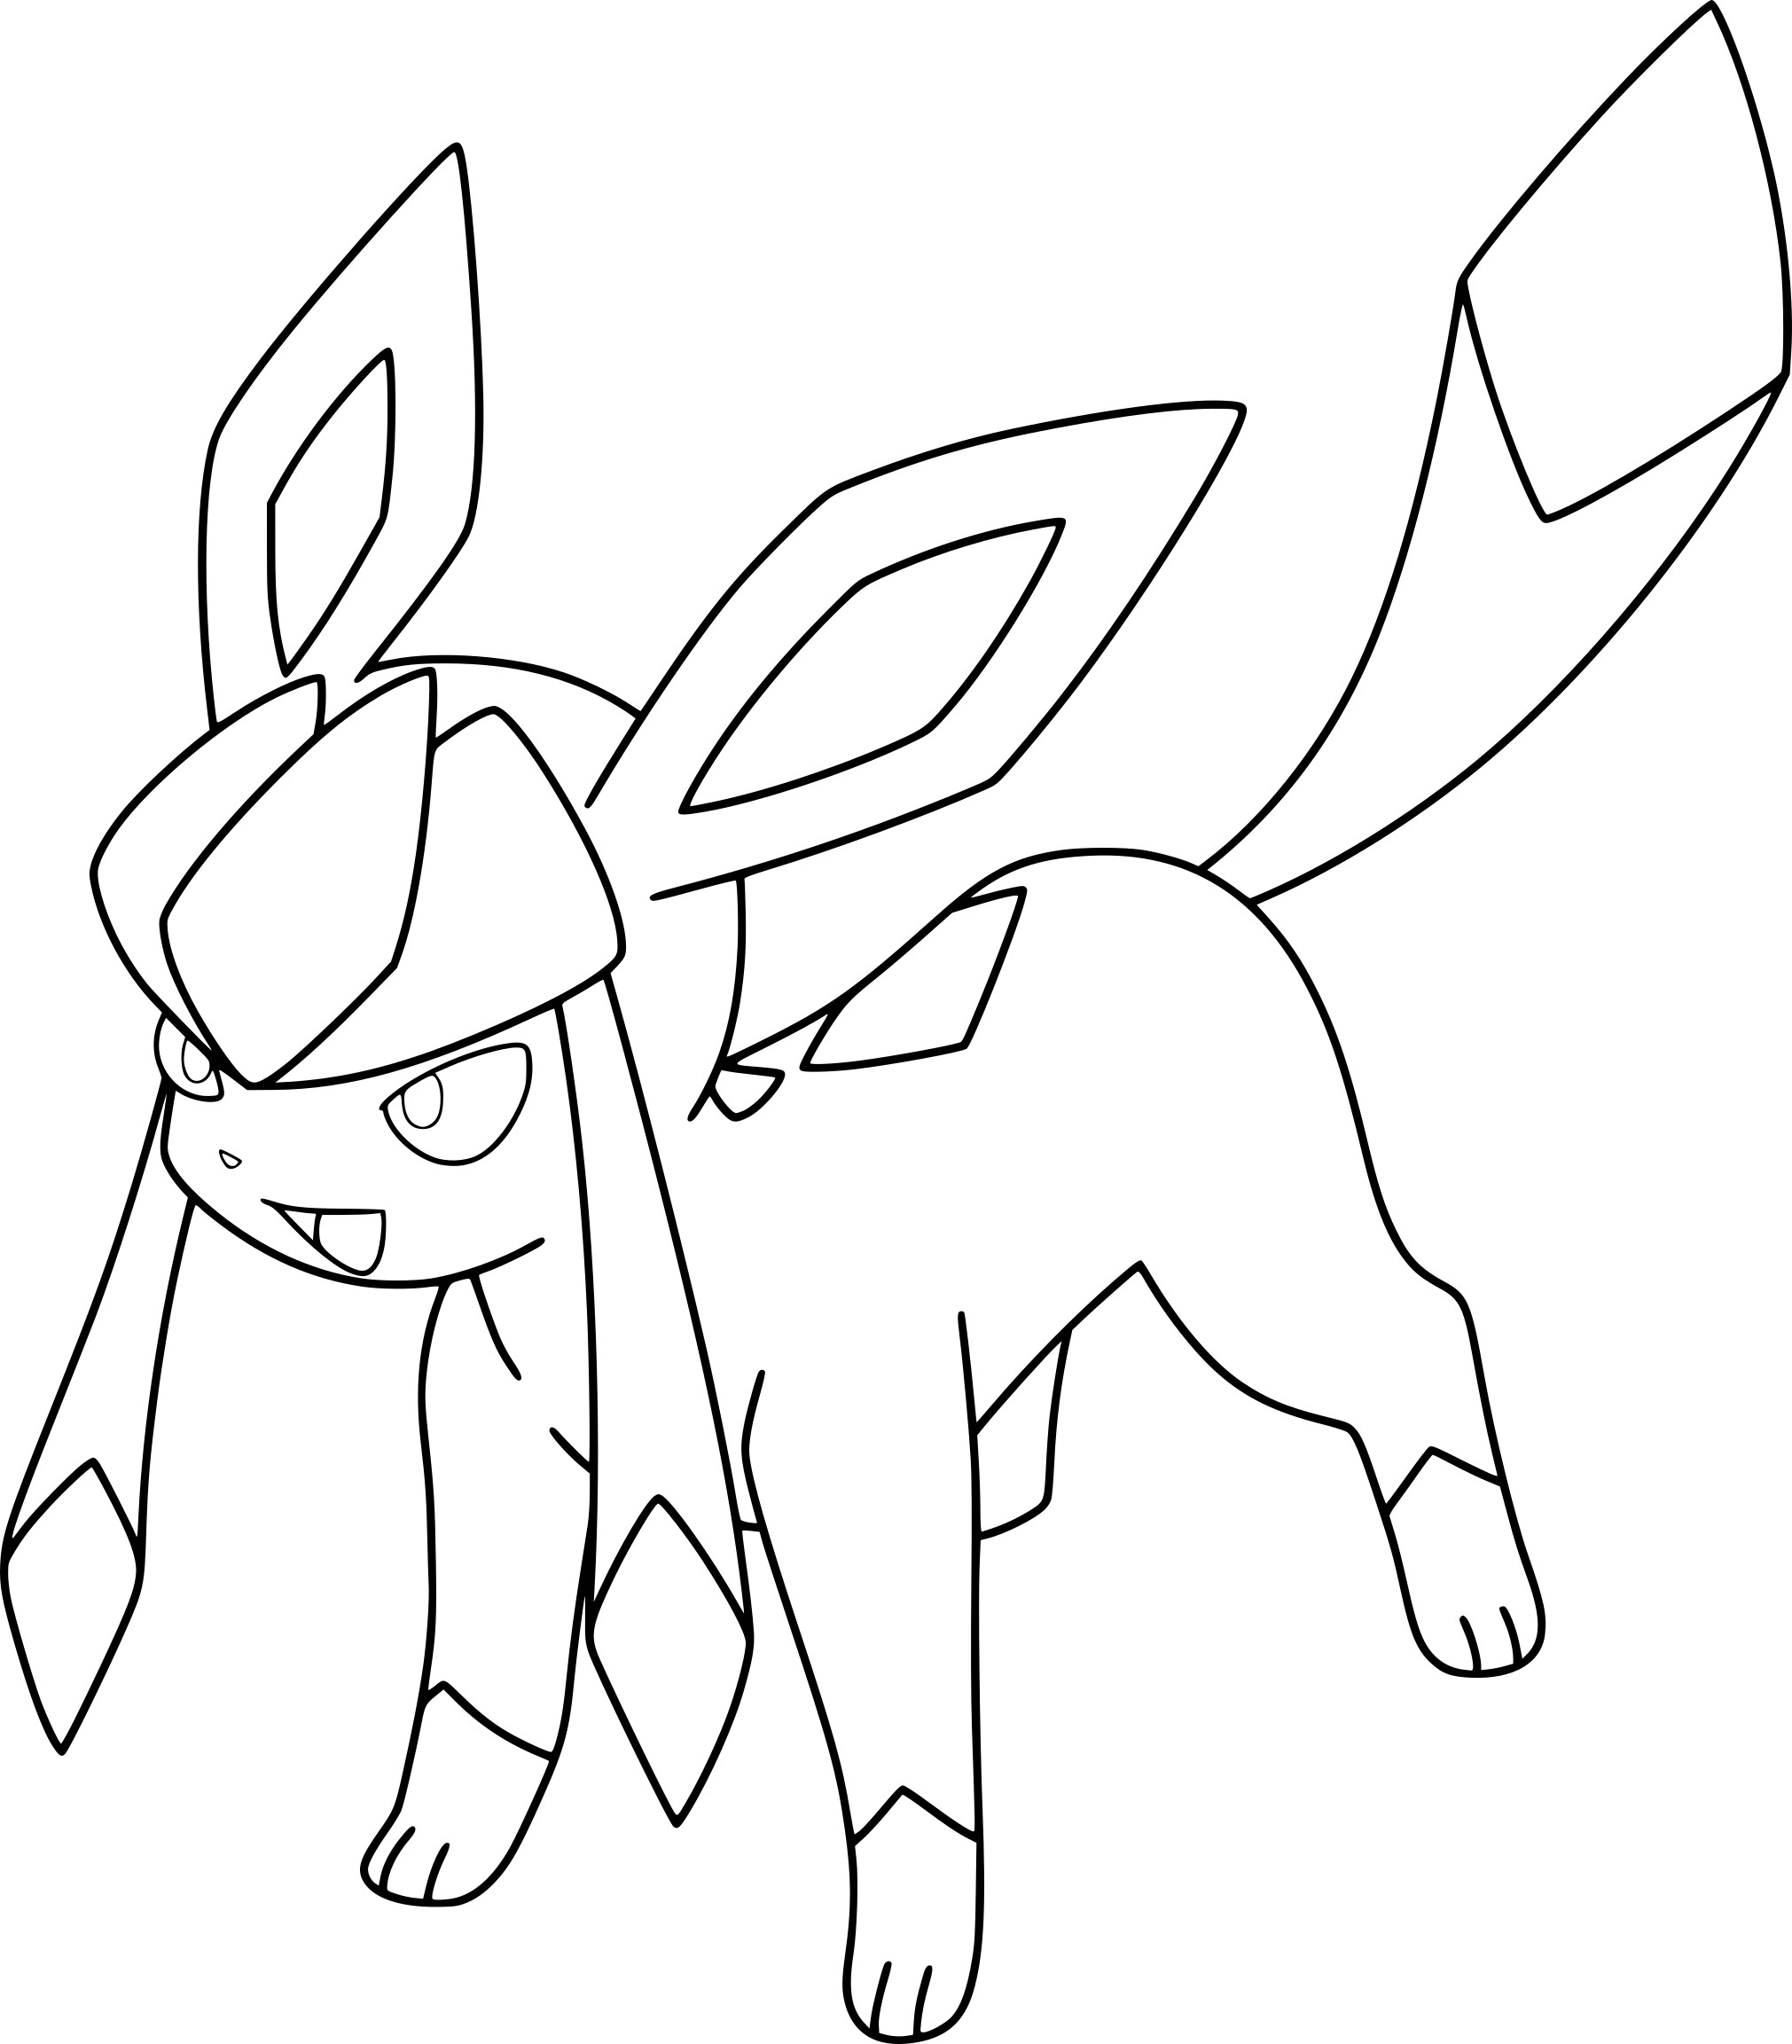 Coloriage givrali pokemon imprimer - Coloriage pokemon sulfura ...